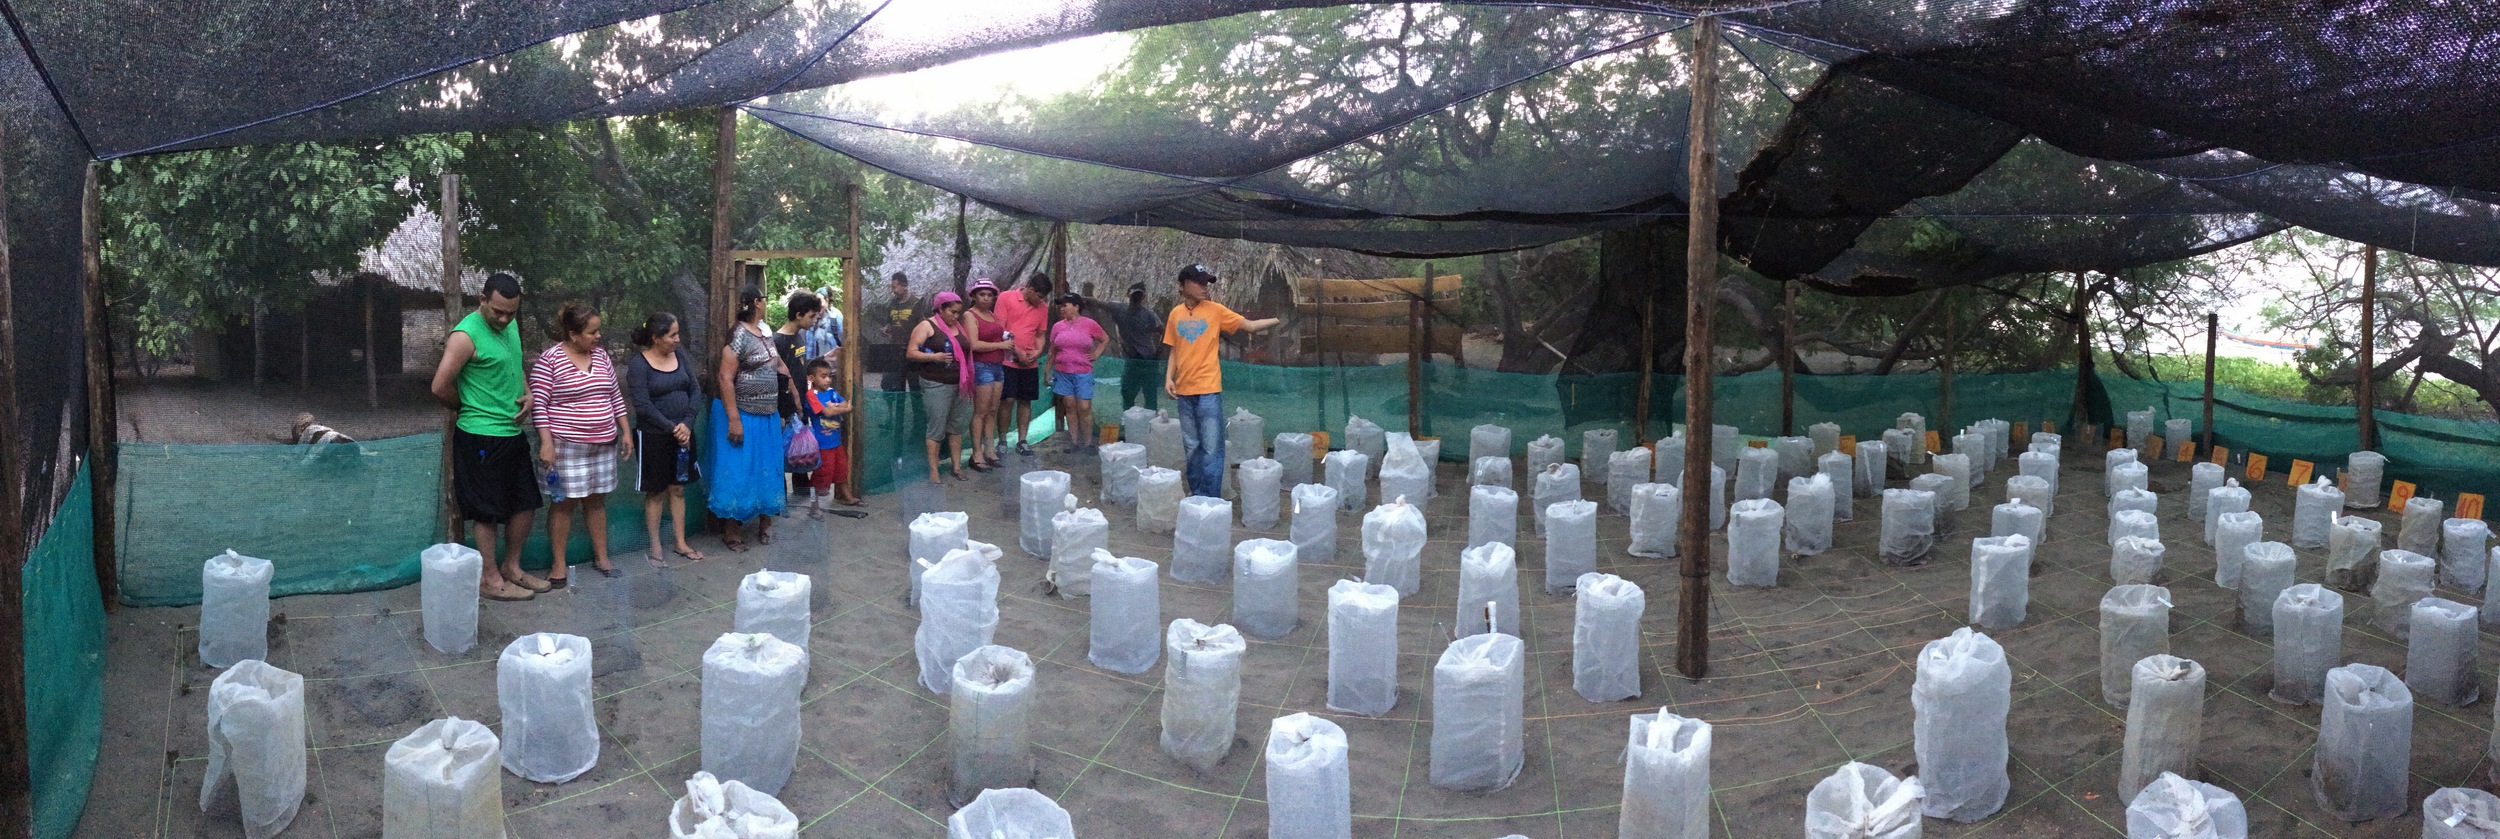 Teachers visiting a sea turtle hatchery in Nicaragua (credit: Brad Nahill)